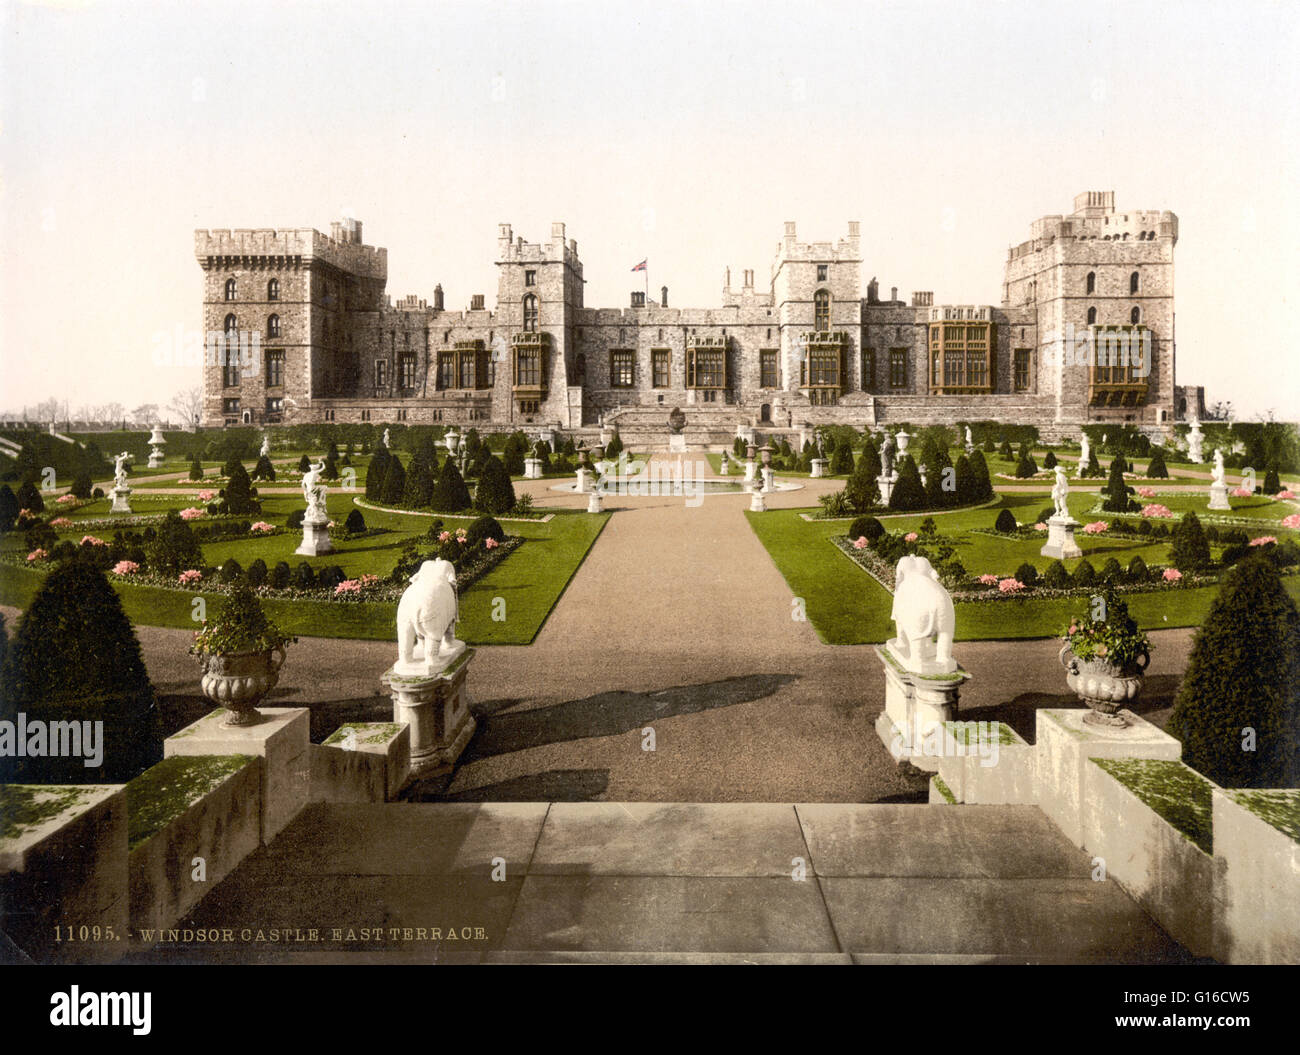 Windsor, East Terrace, England. Windsor Castle is a royal residence at Windsor in the English county of Berkshire. - Stock Image